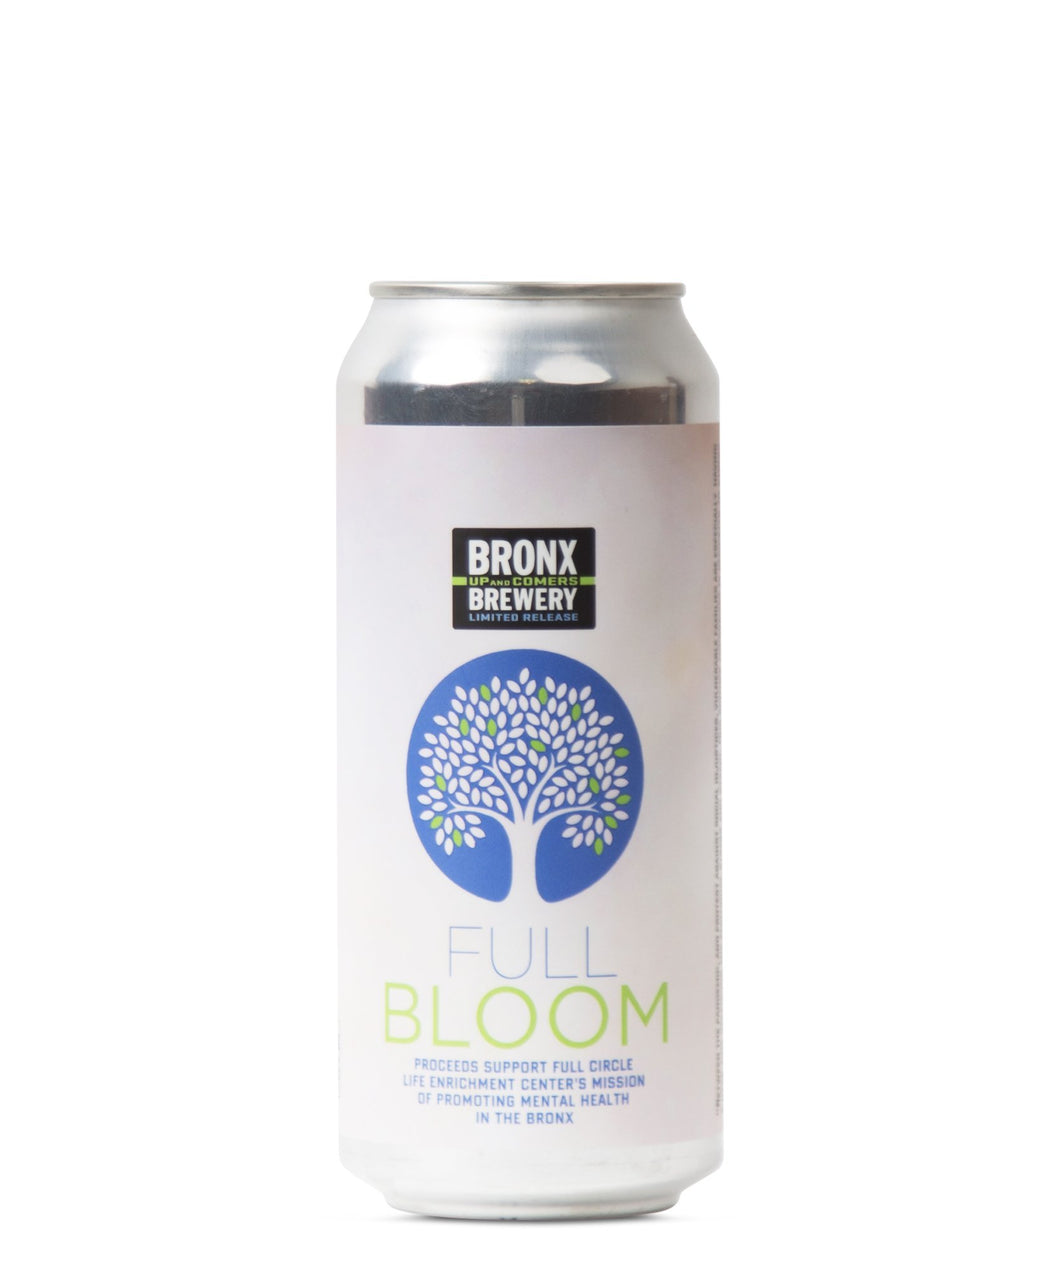 Full Bloom - The Bronx Brewery Delivered By TapRm